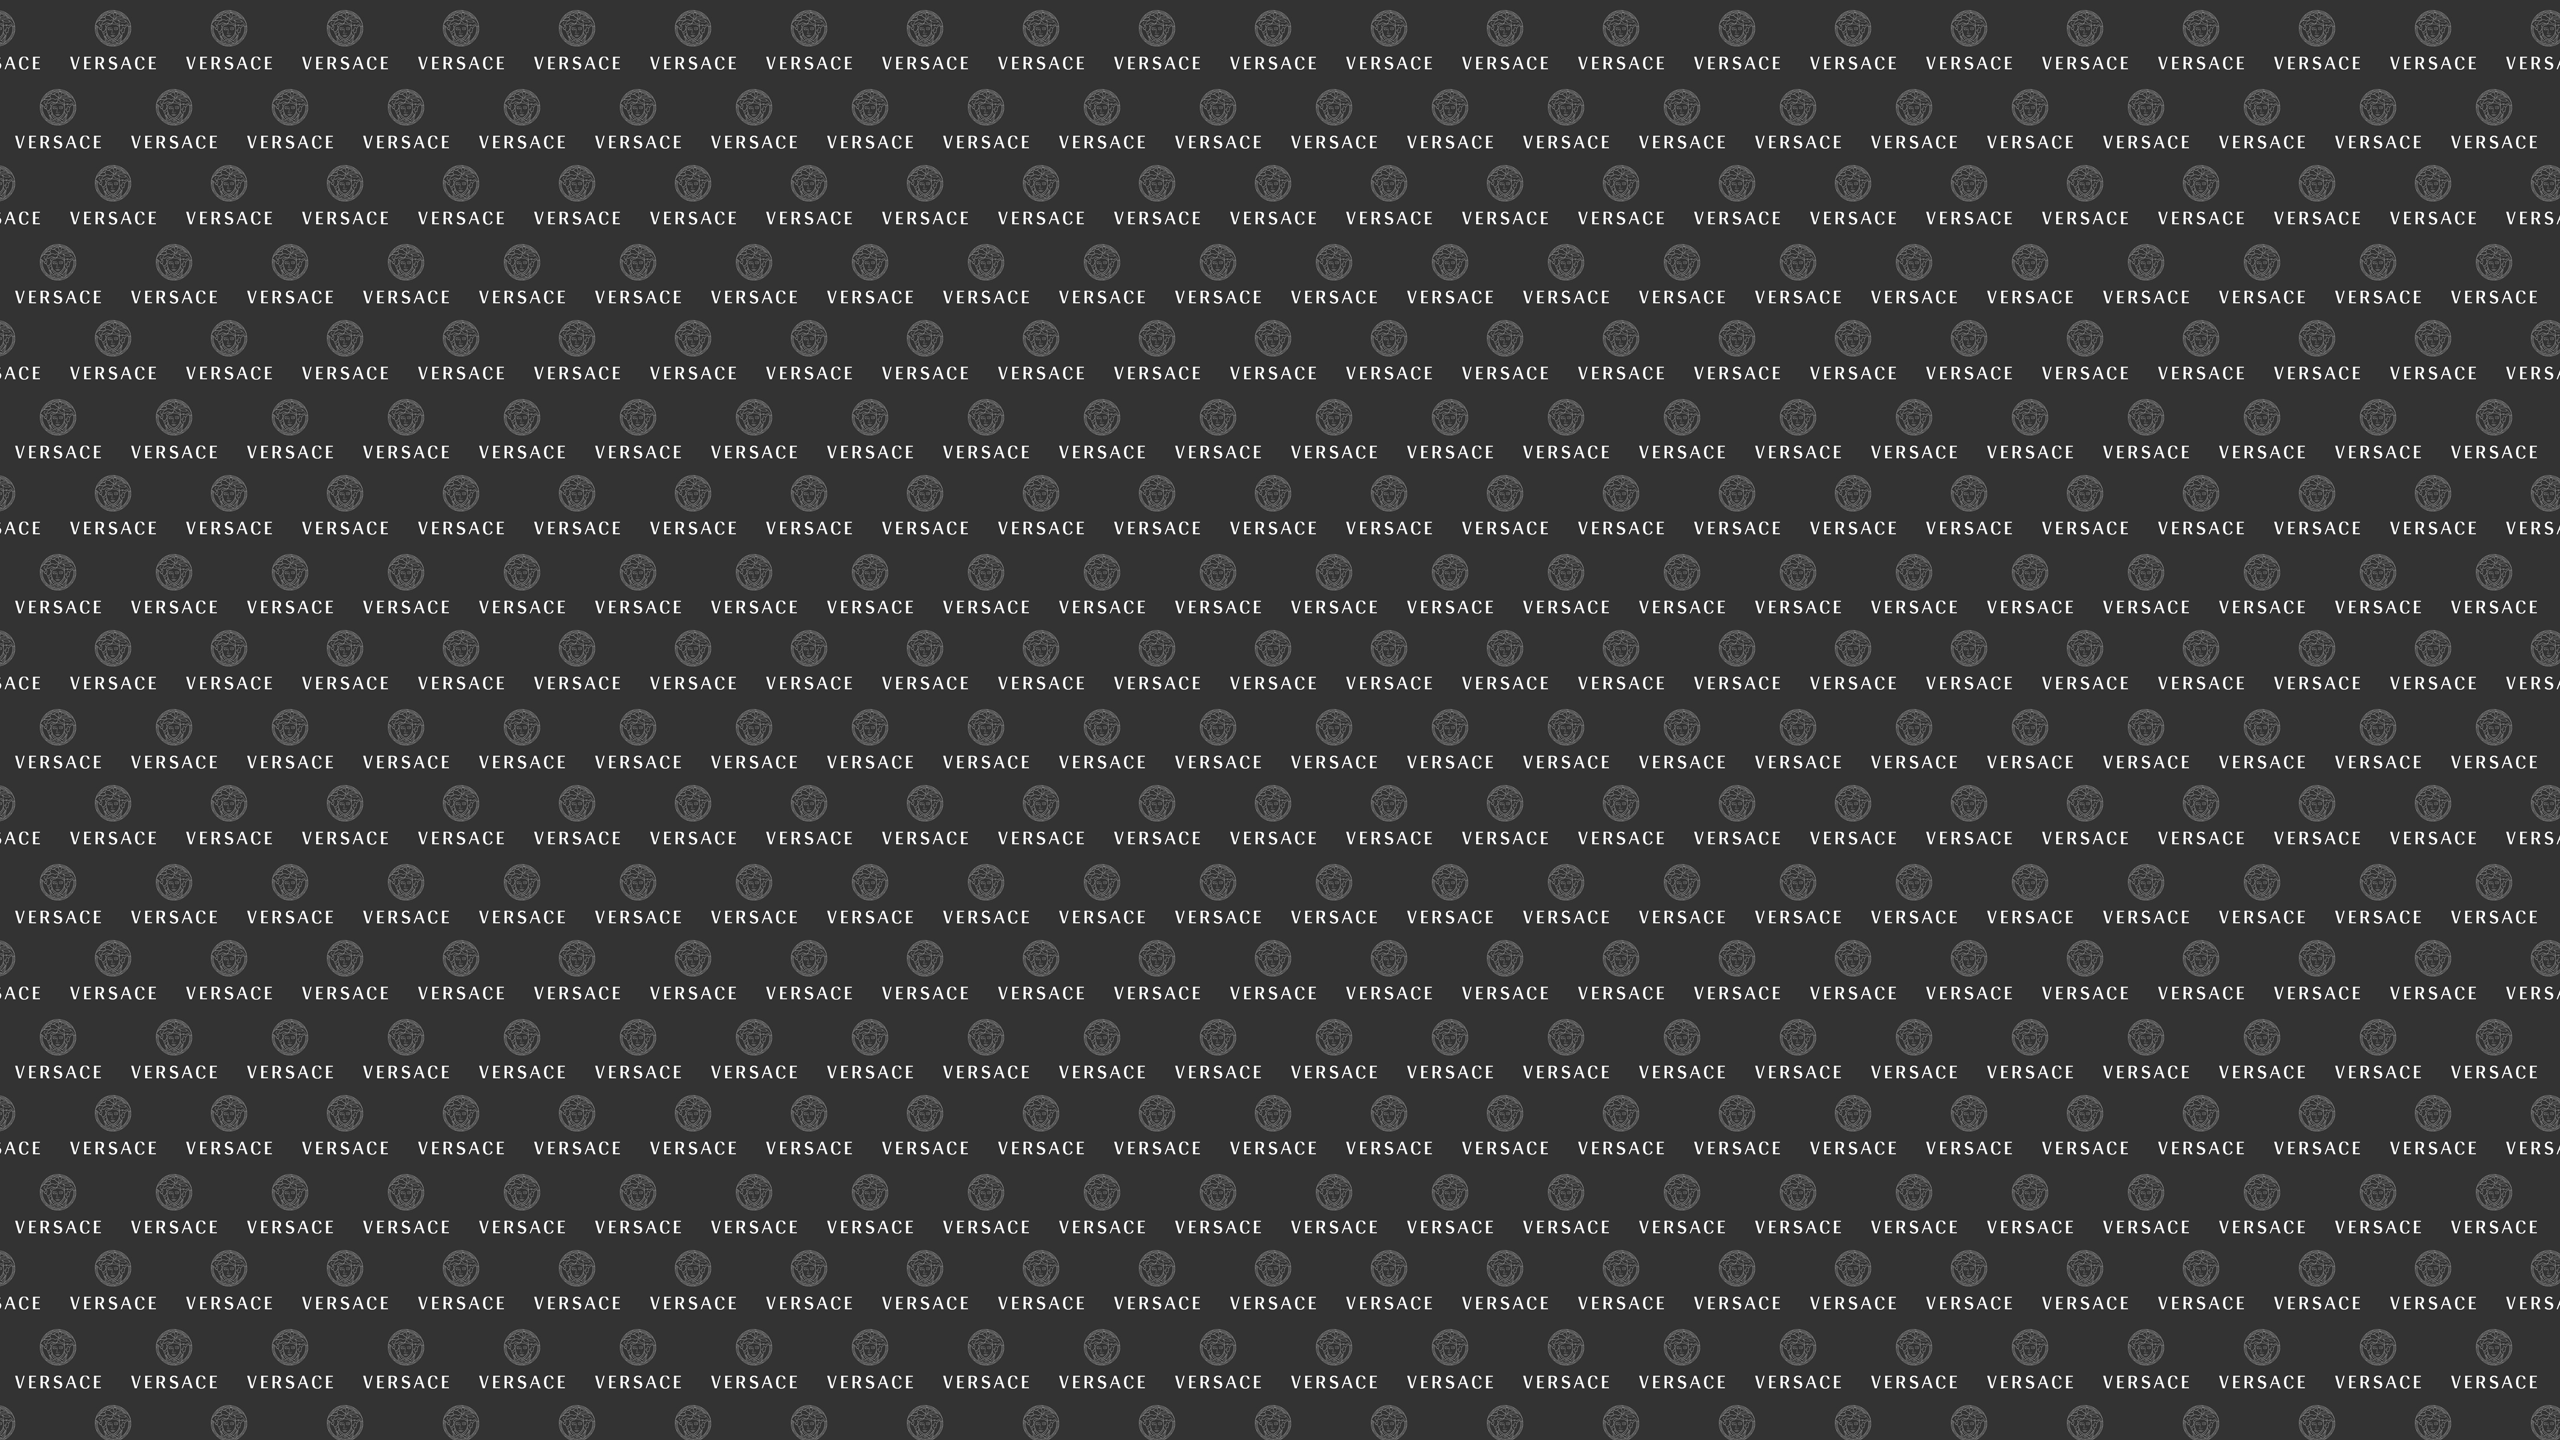 this Versace Desktop Wallpaper is easy Just save the wallpaper 2560x1440